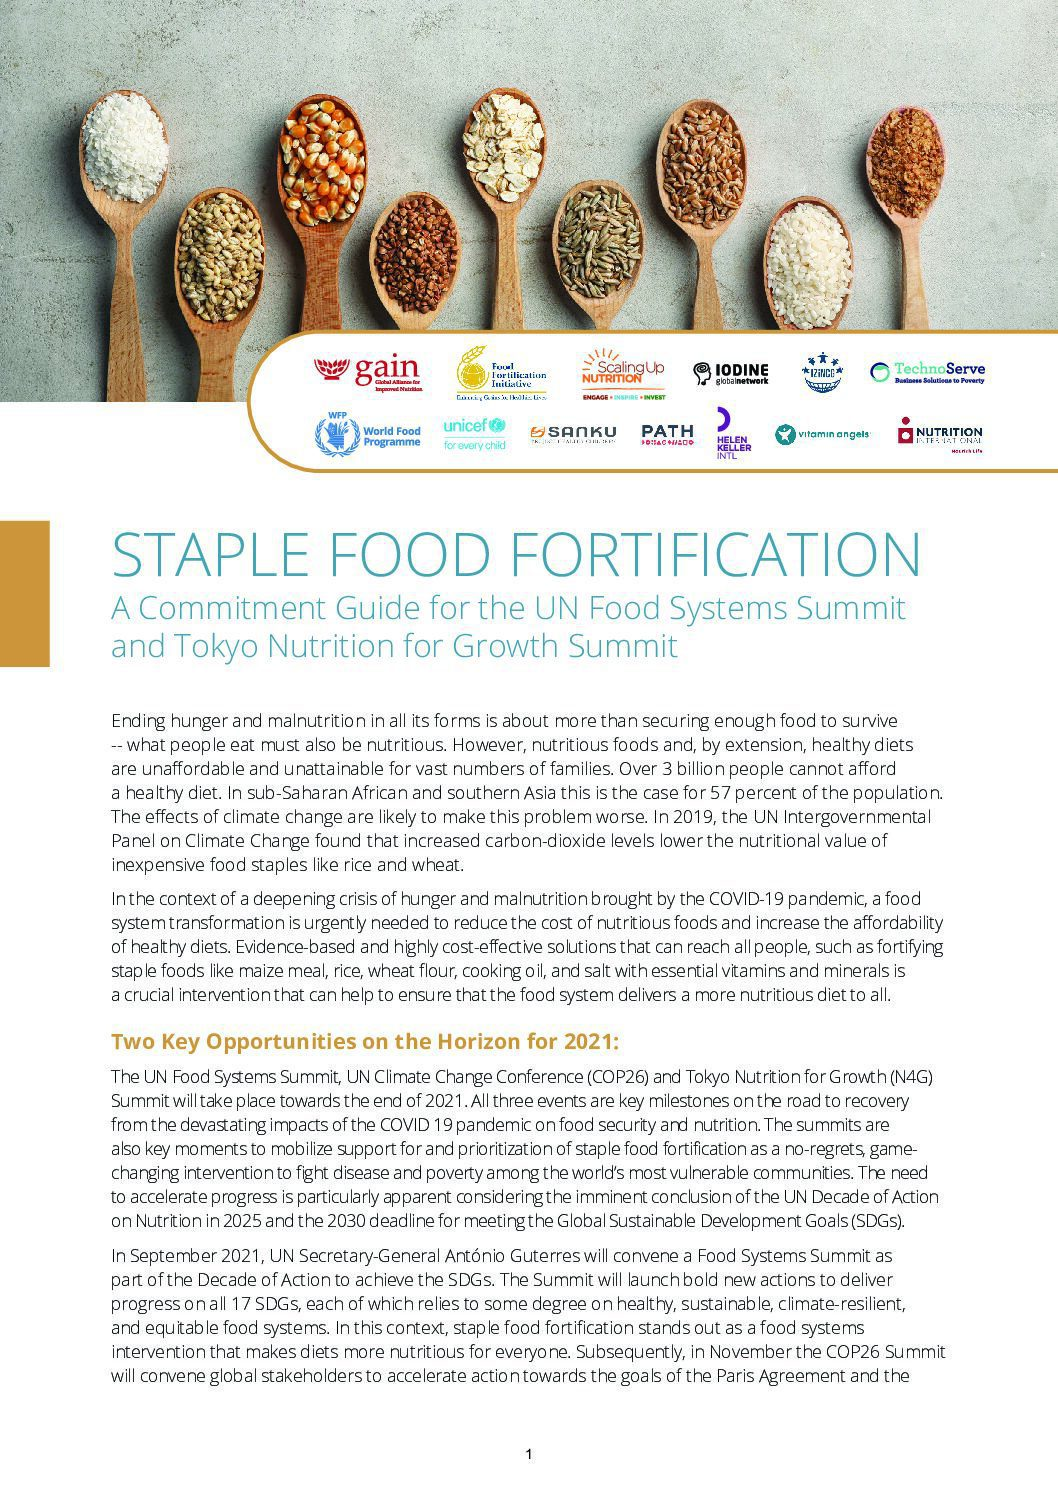 Staple Food Fortification: A Commitment Guide for the UN Food Systems Summit and Tokyo Nutrition for Growth Summit thumbnail